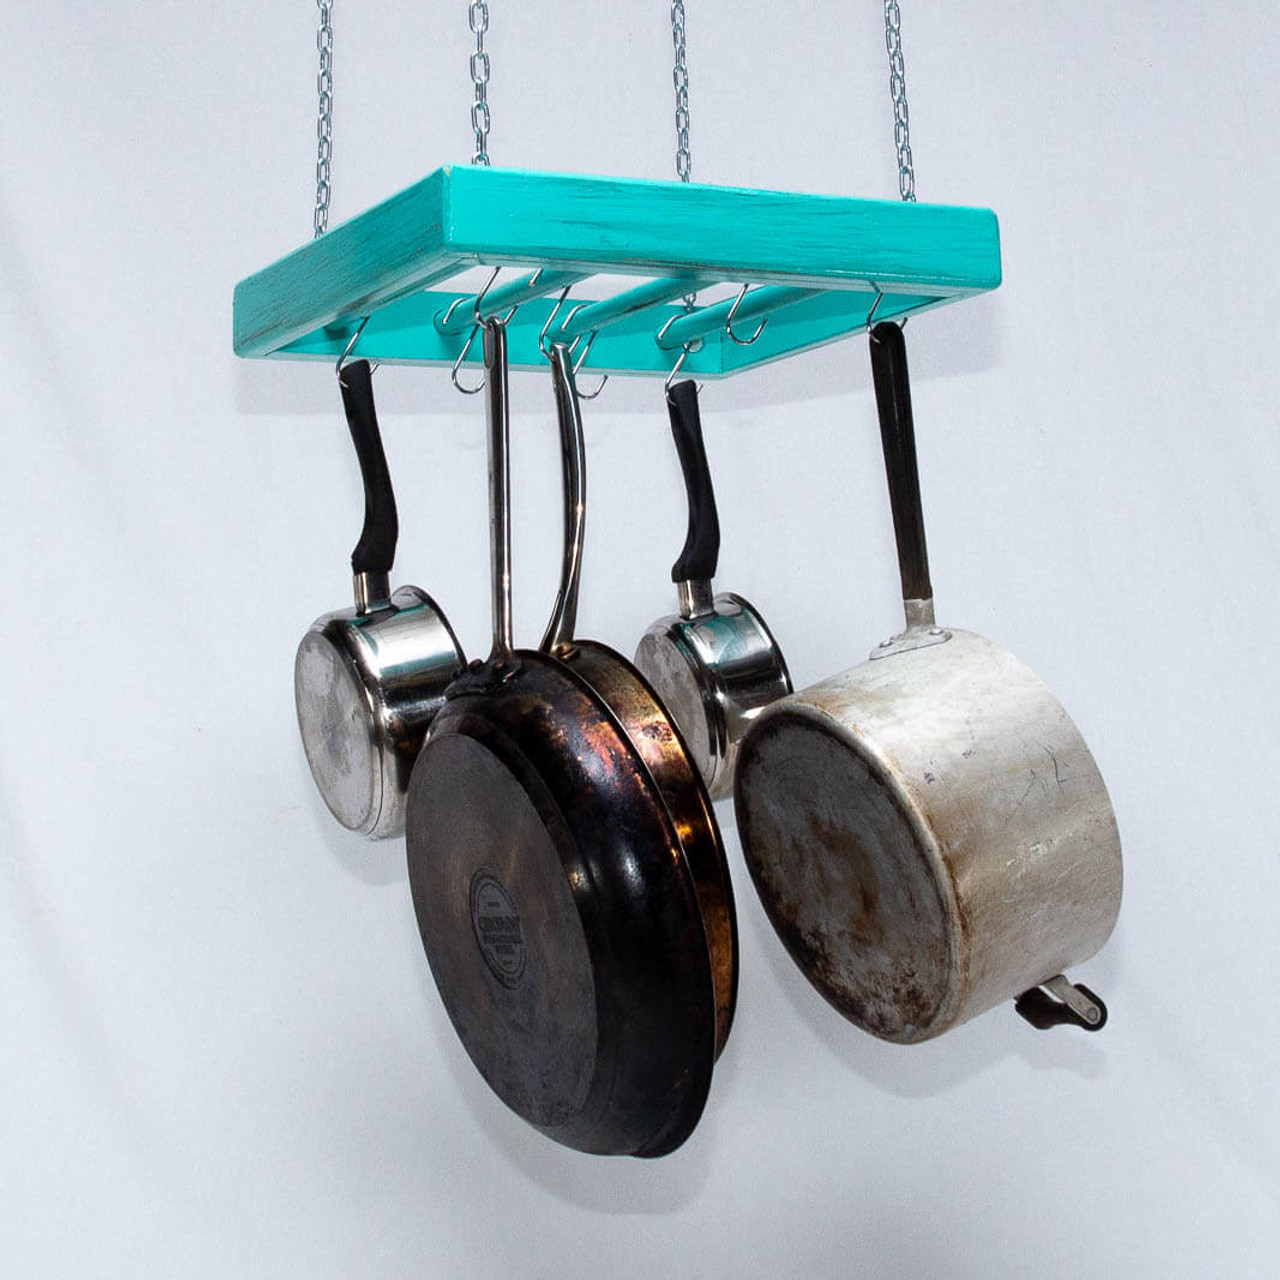 Hanging Pot Rack - Wooden - Ceiling Mounted - Square ...